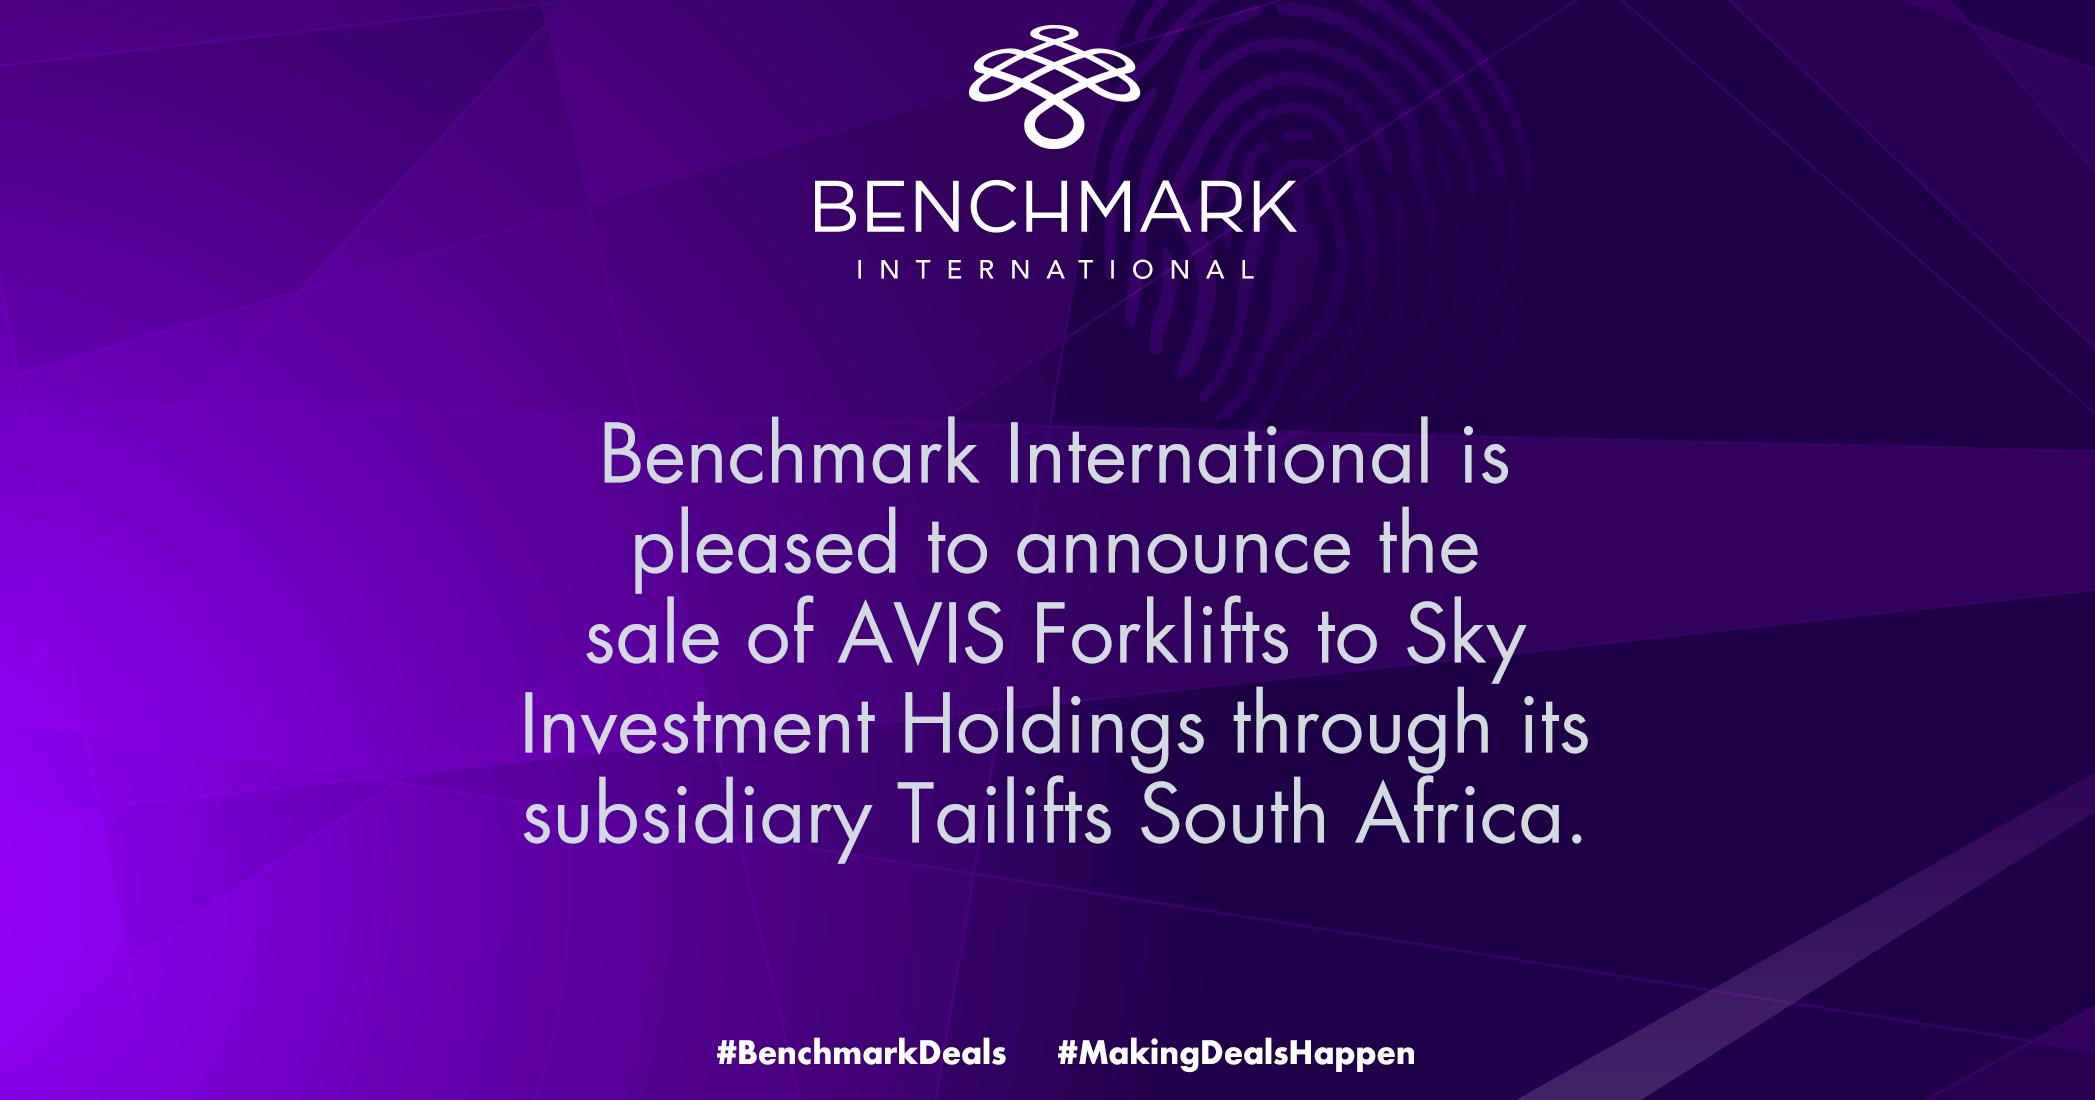 Benchmark International Facilitated the sale of AVIS Forklifts (Pty) Ltd (AVIS) to Sky Investment Holdings (Pty) Ltd through its subsidiary Tailifts South Africa (Pty) Ltd (Tailifts)